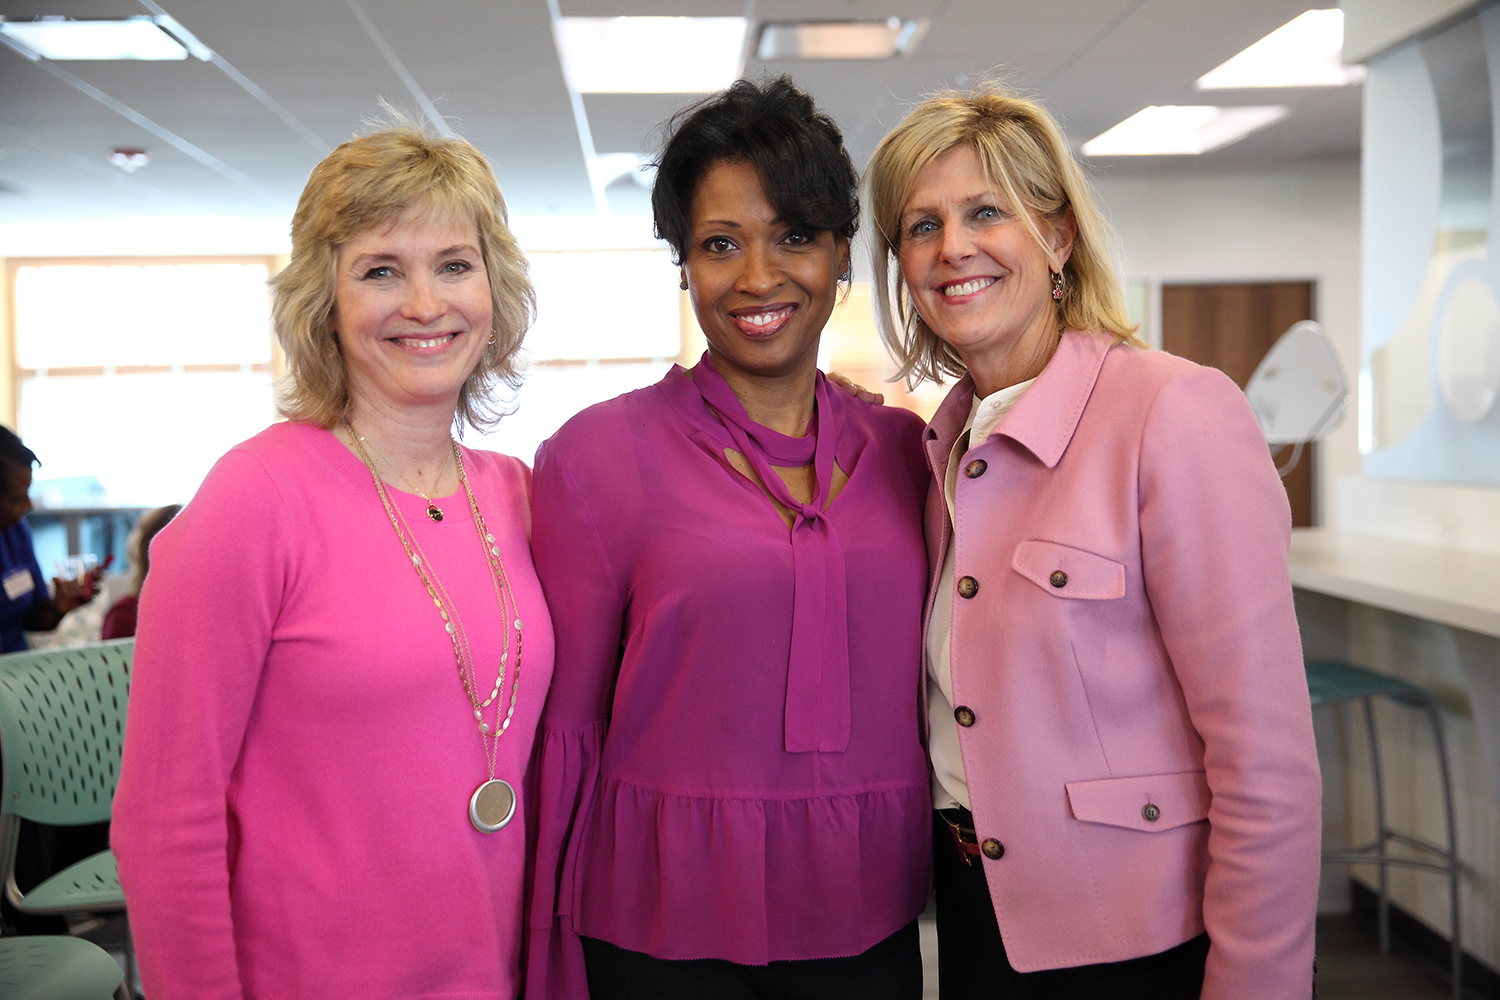 Kathy McCabe, Dr. Charisse Hudson-Quigley and Heidi Prom.  Photos by C. Saville Photography.